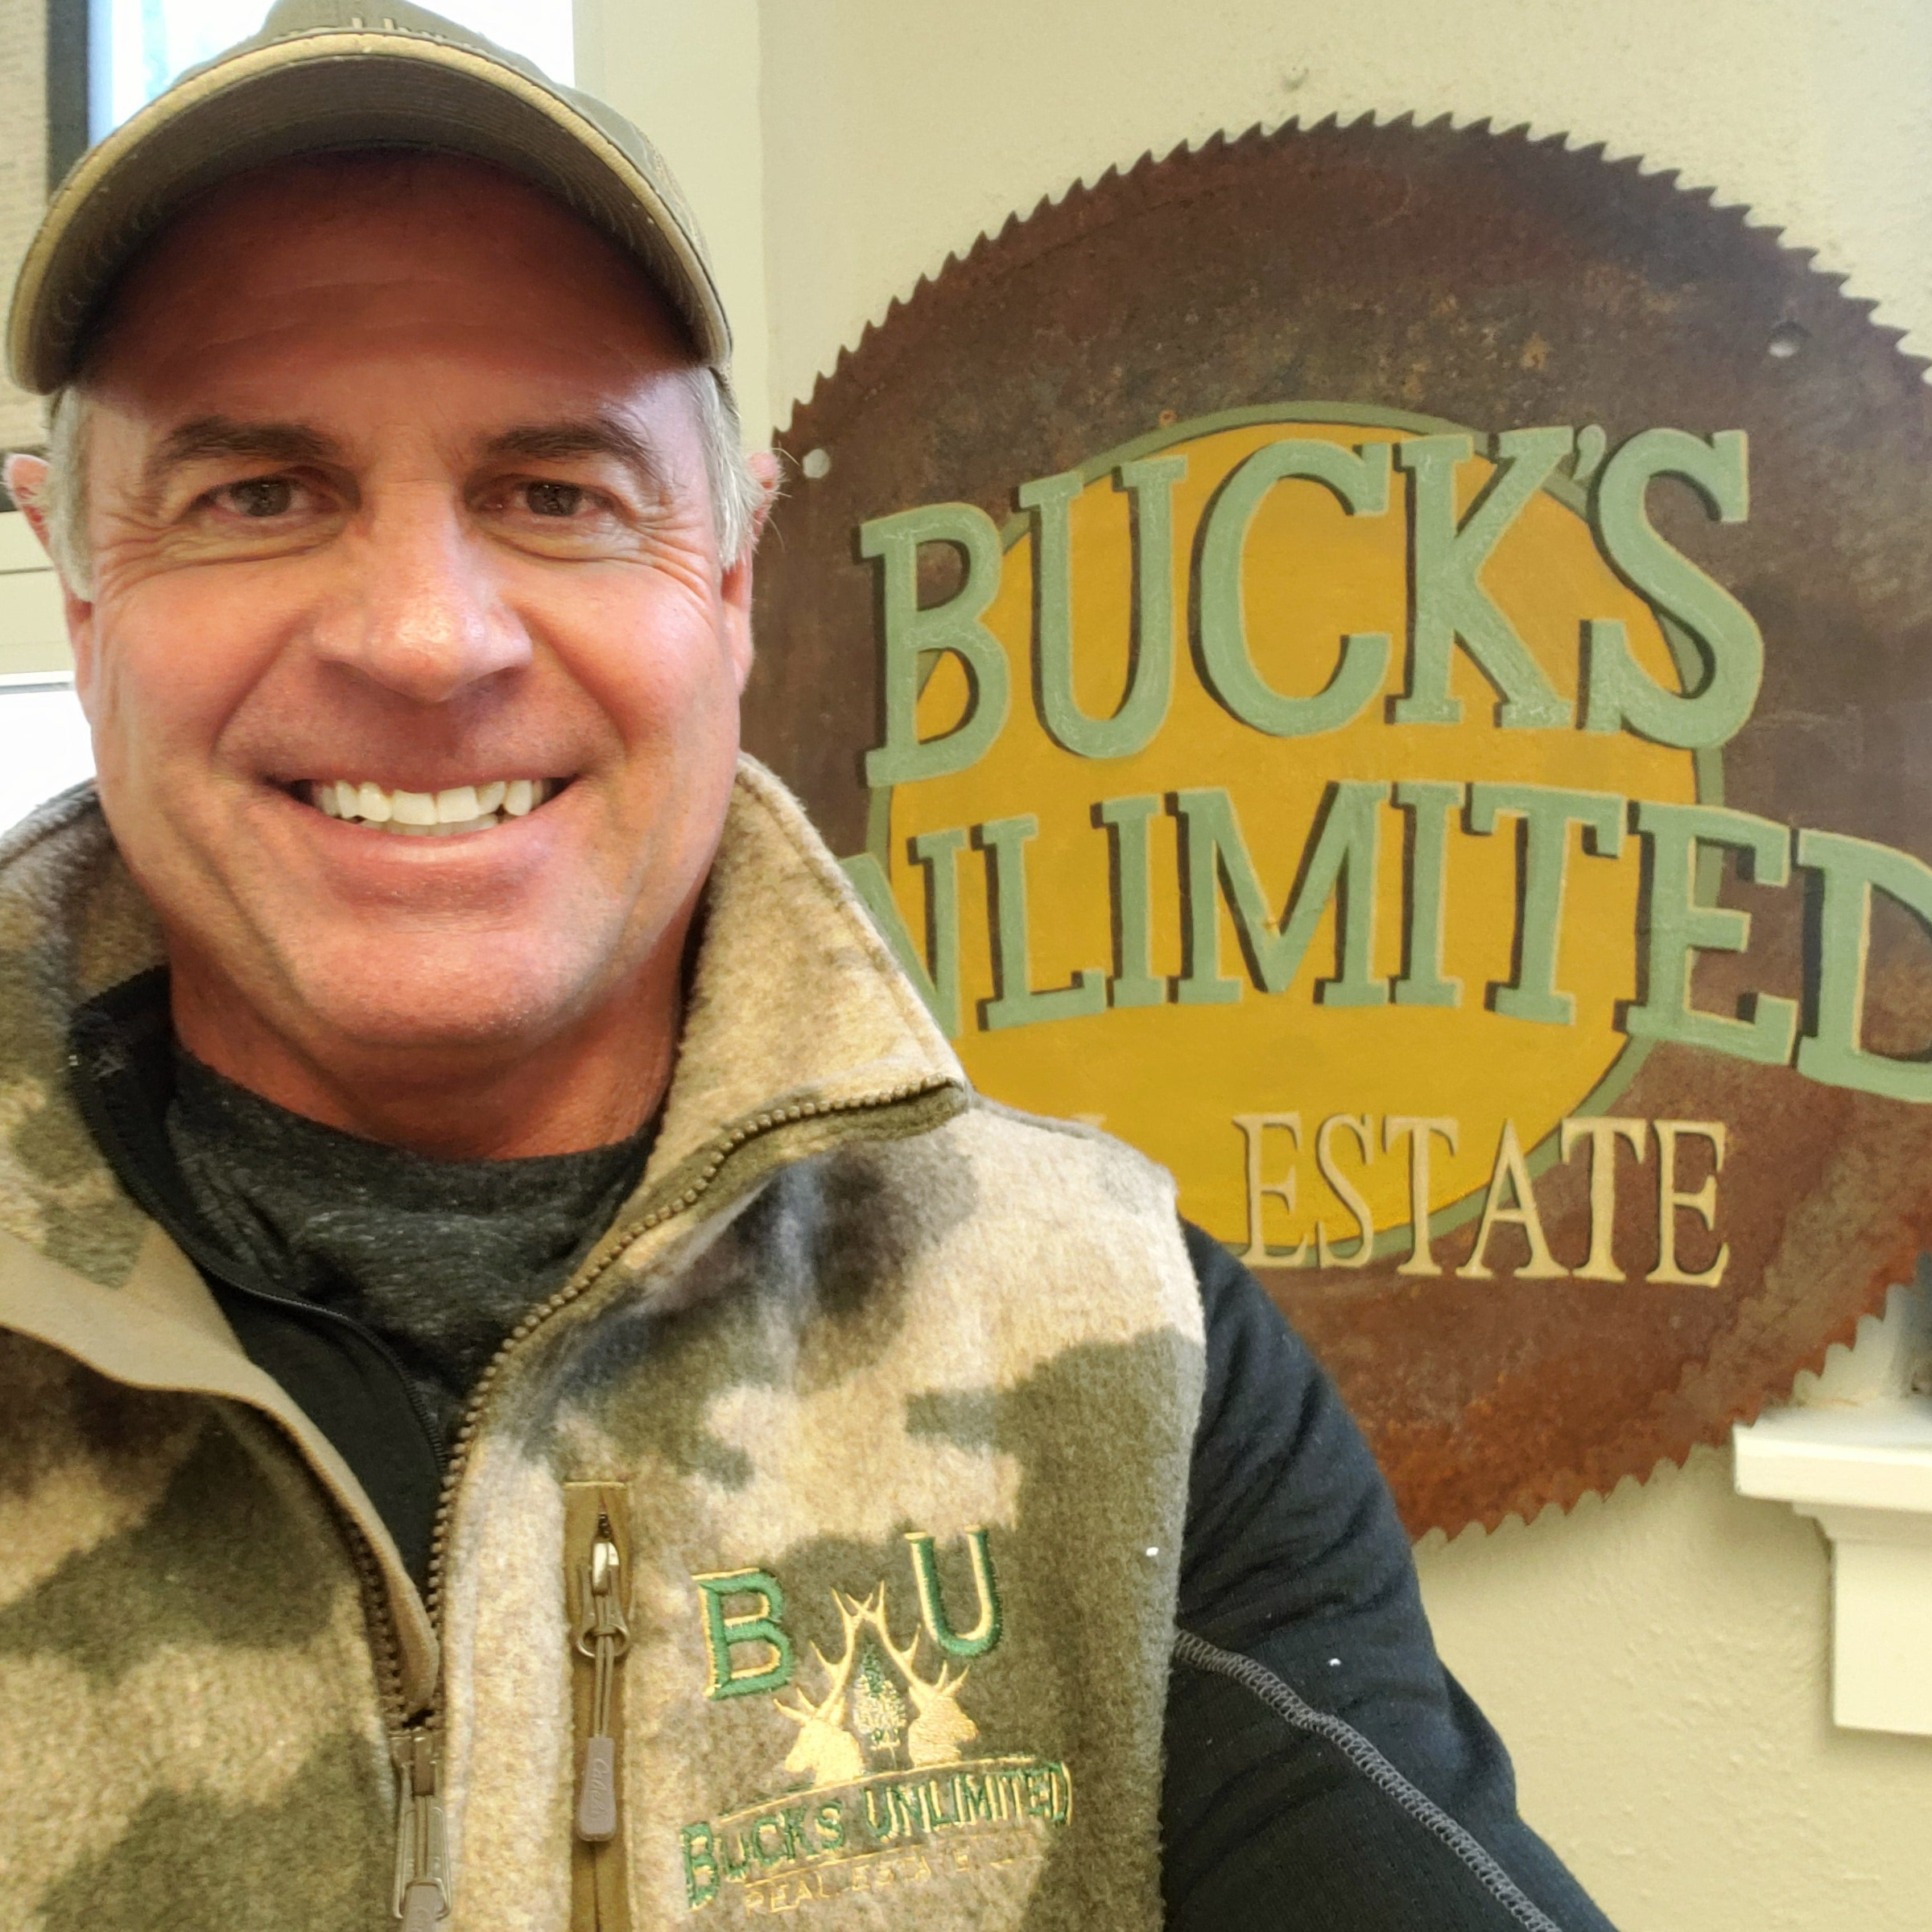 mark-buck-bucks-unlimited-real-estate-sign-cropped.jpeg